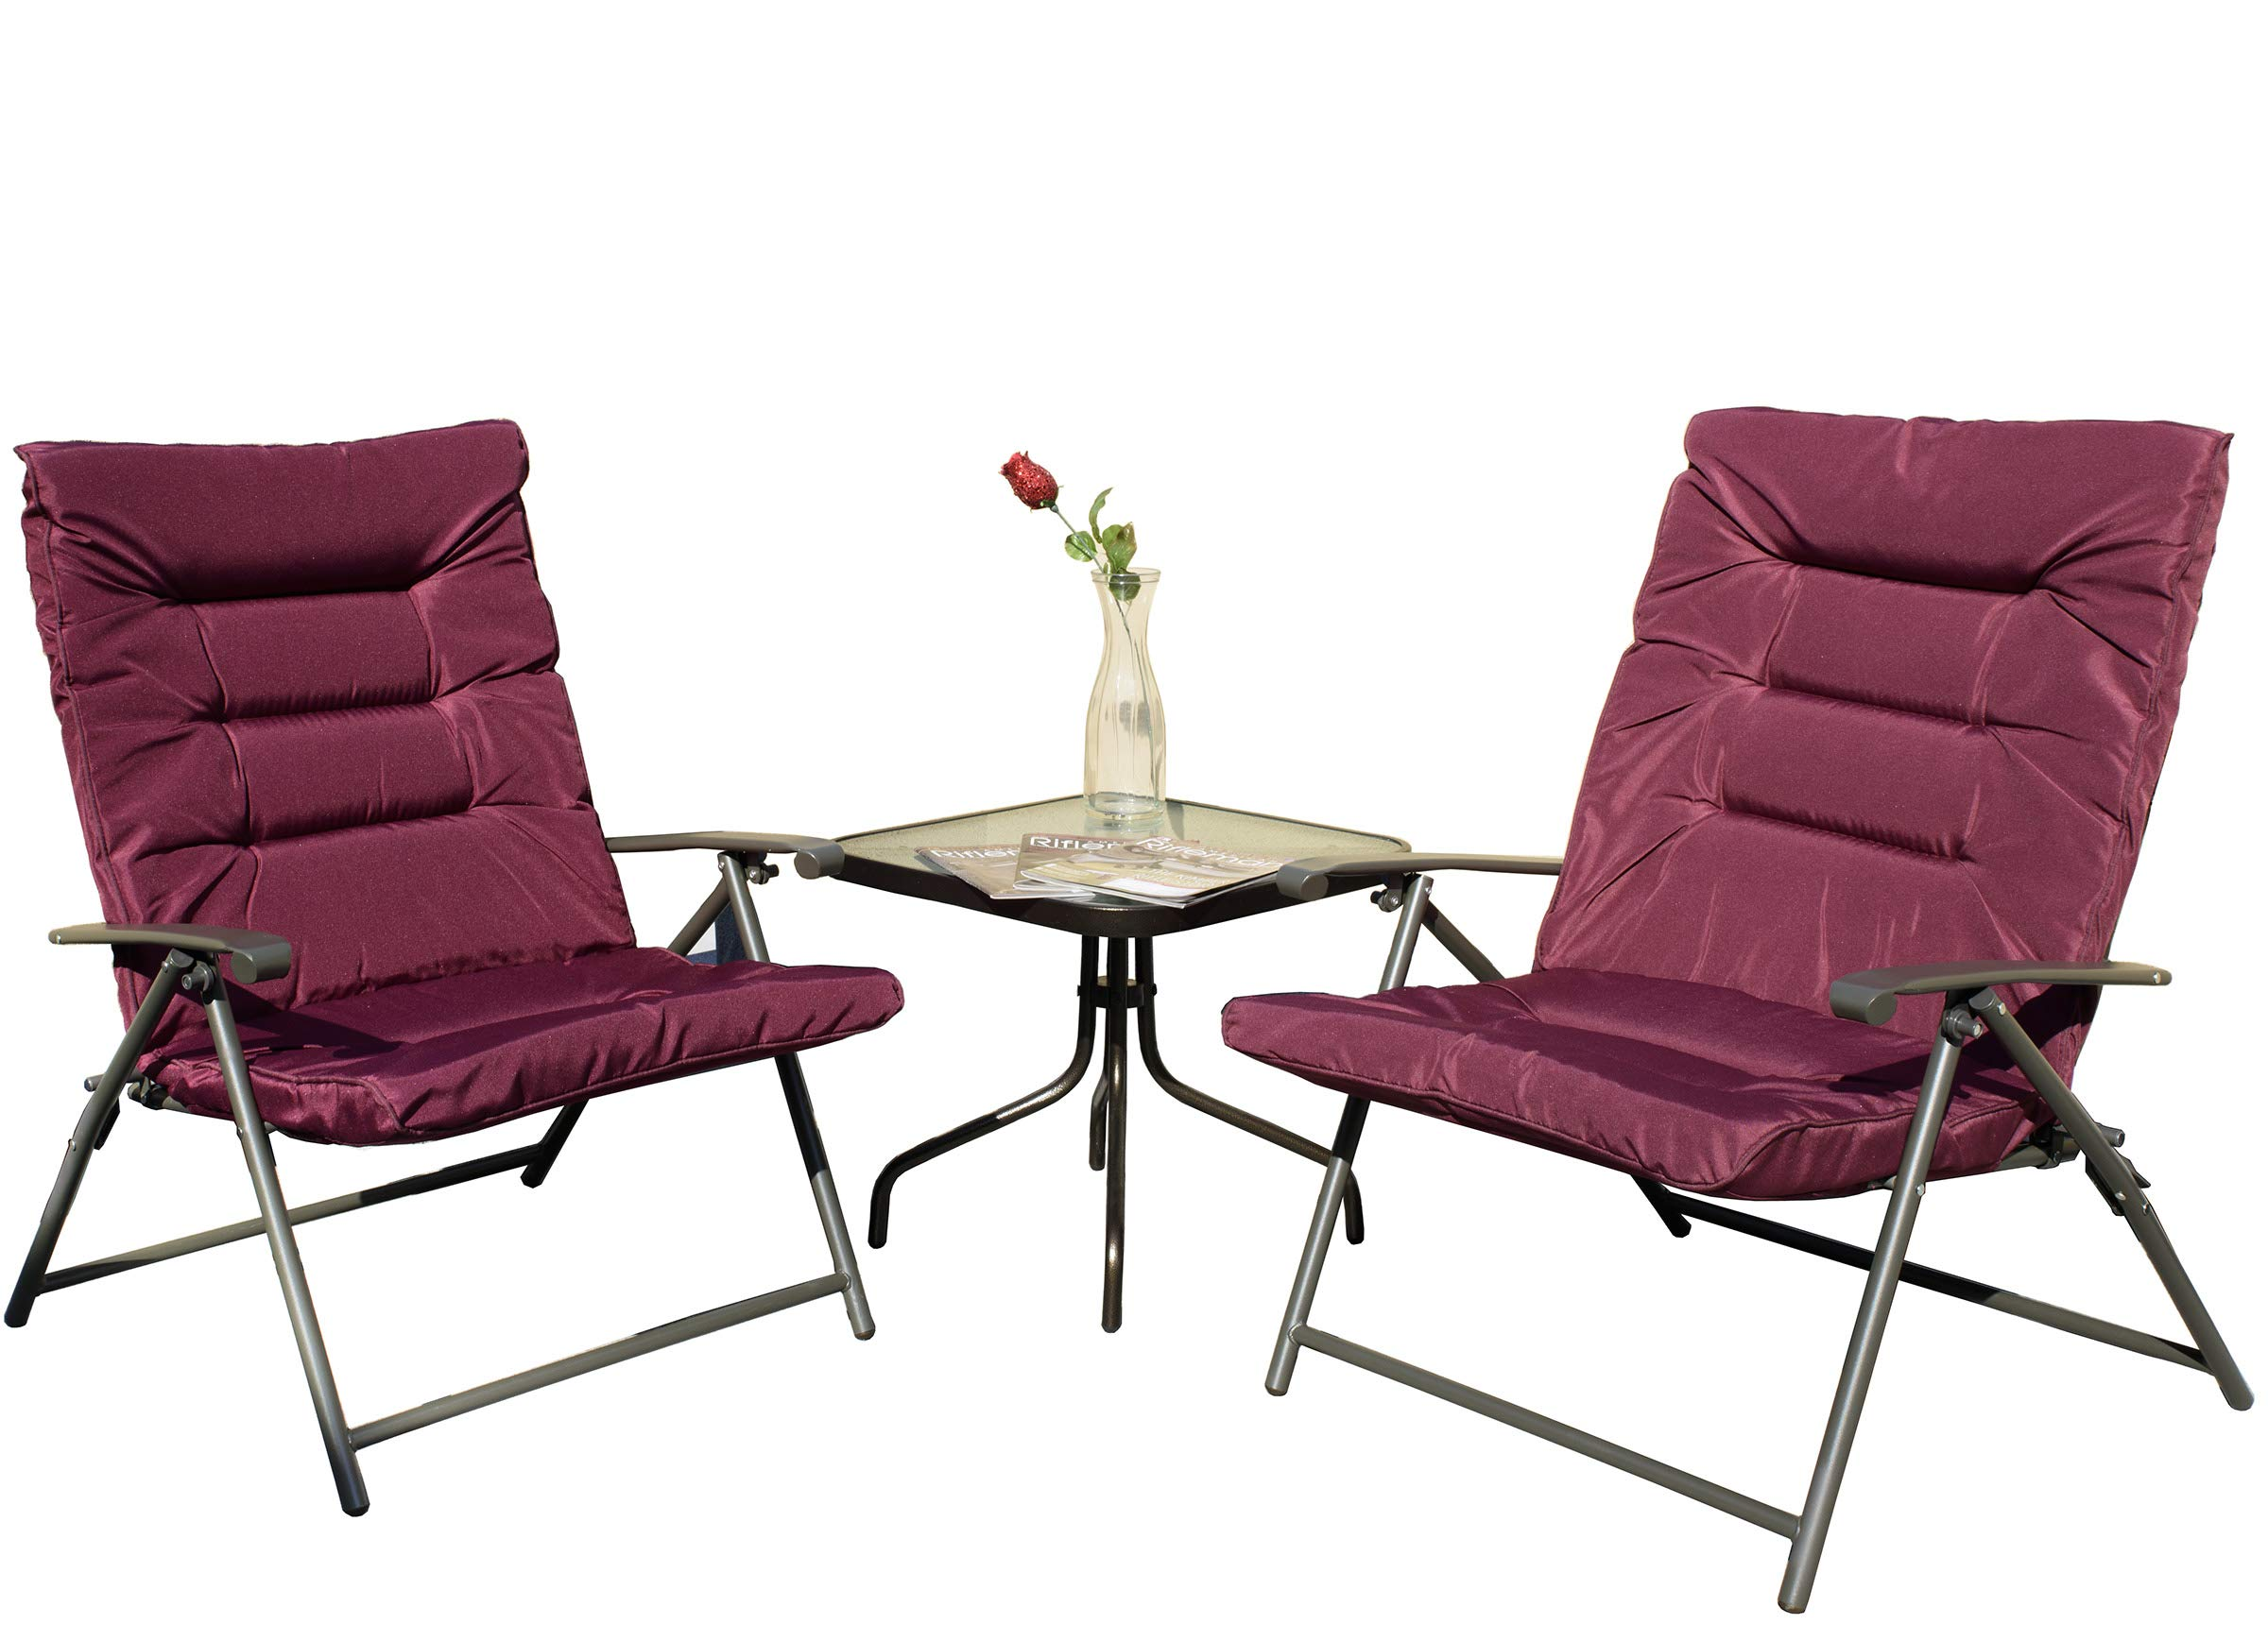 Kozyard Elsa 3 Pieces Outdoor Patio Furniture Padded Folding Bistro-Sets for Yard, Patio, Deck or Backyard(Purple Red)